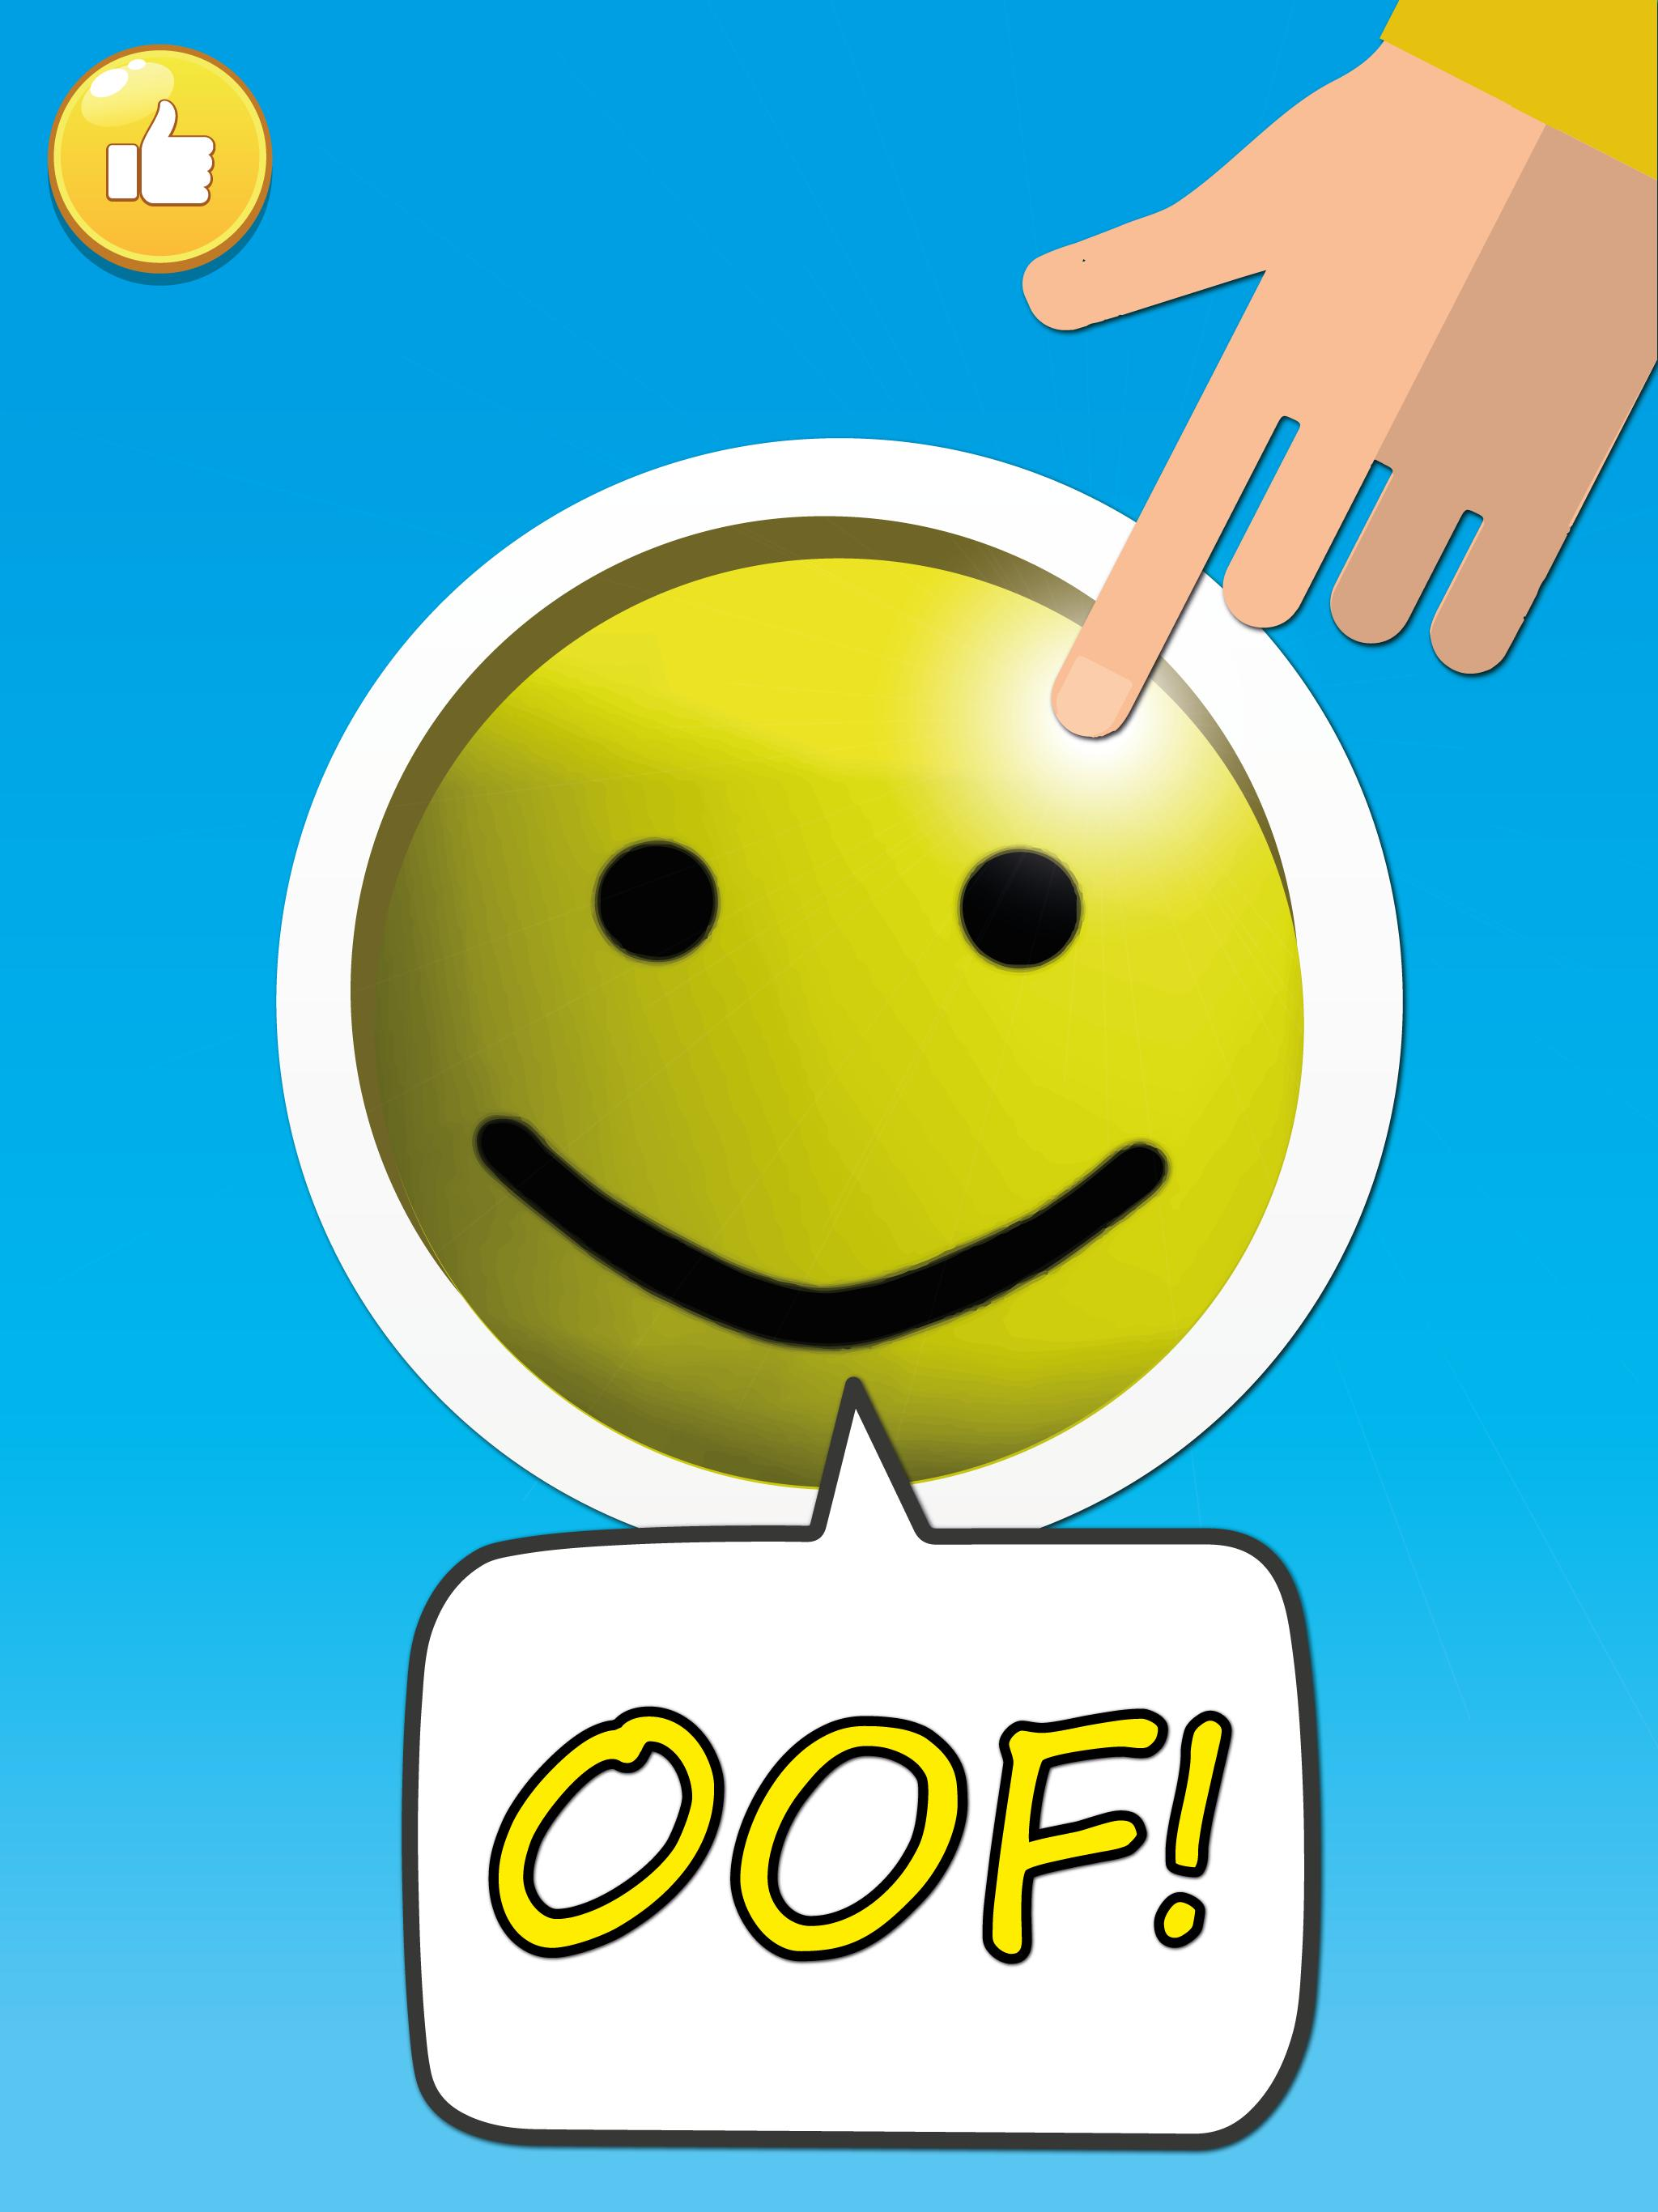 OOF! Roblox Sound Button for Android - APK Download